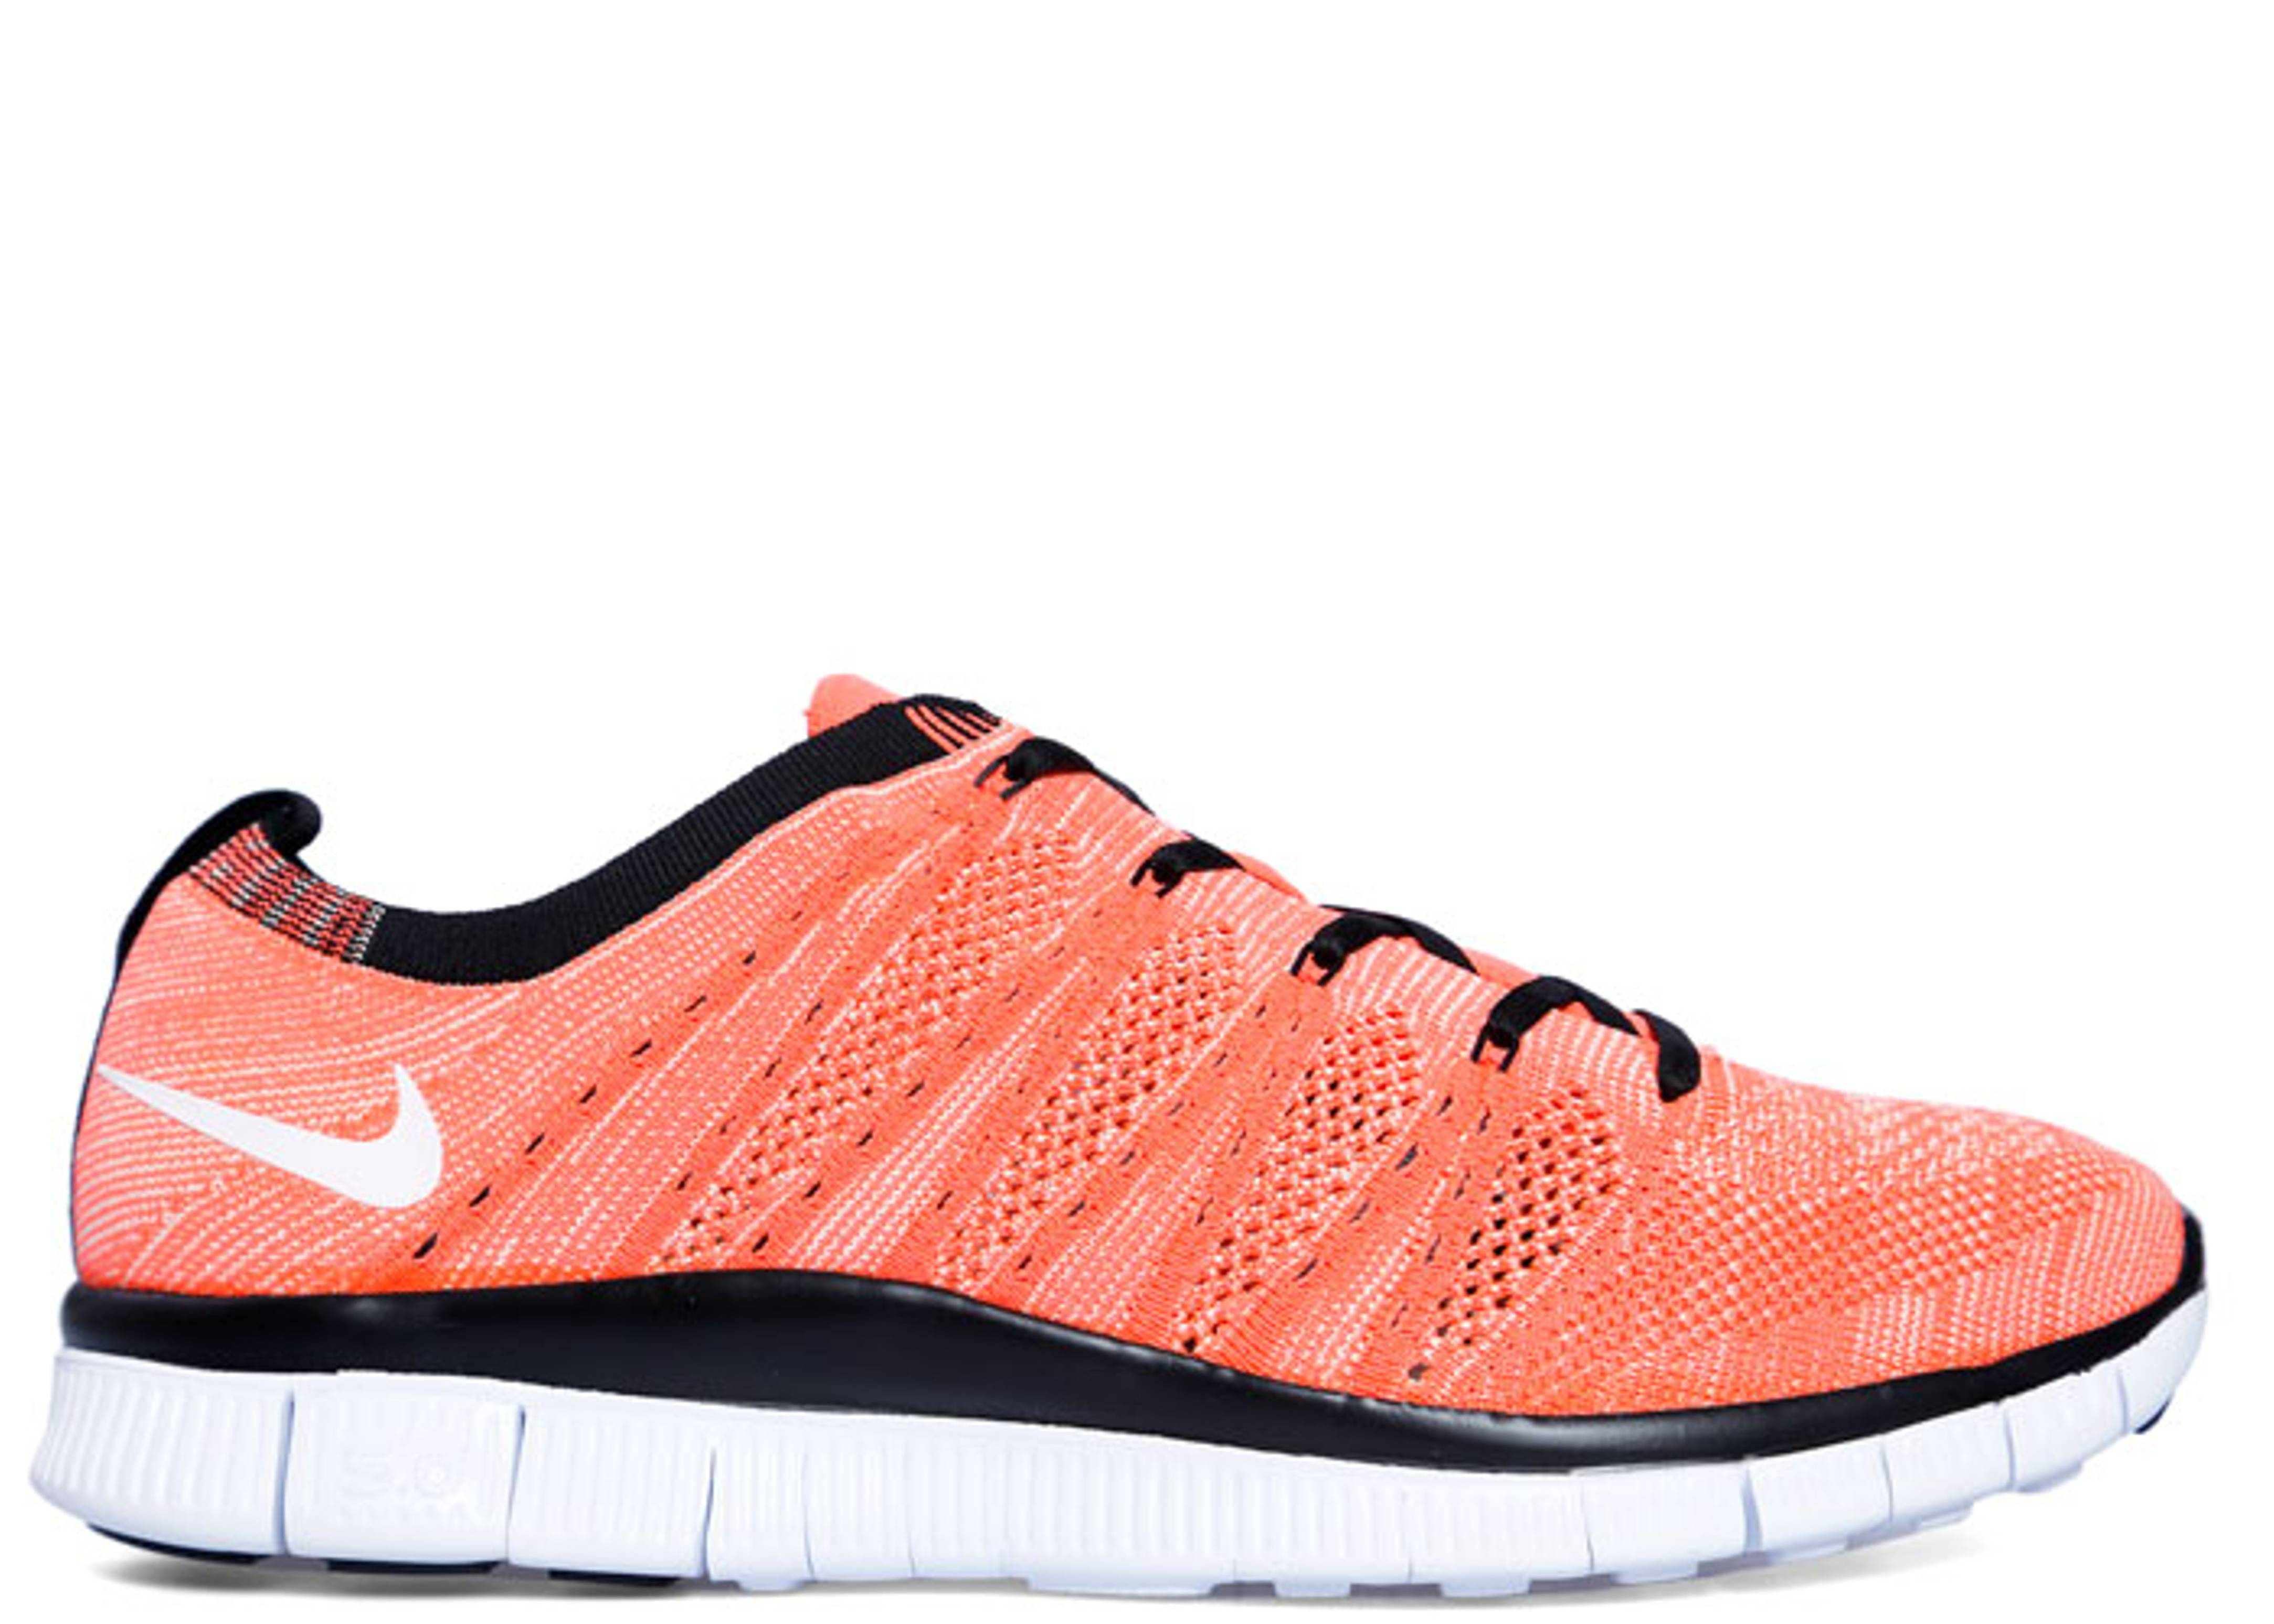 Nike Free Flyknit NSW low